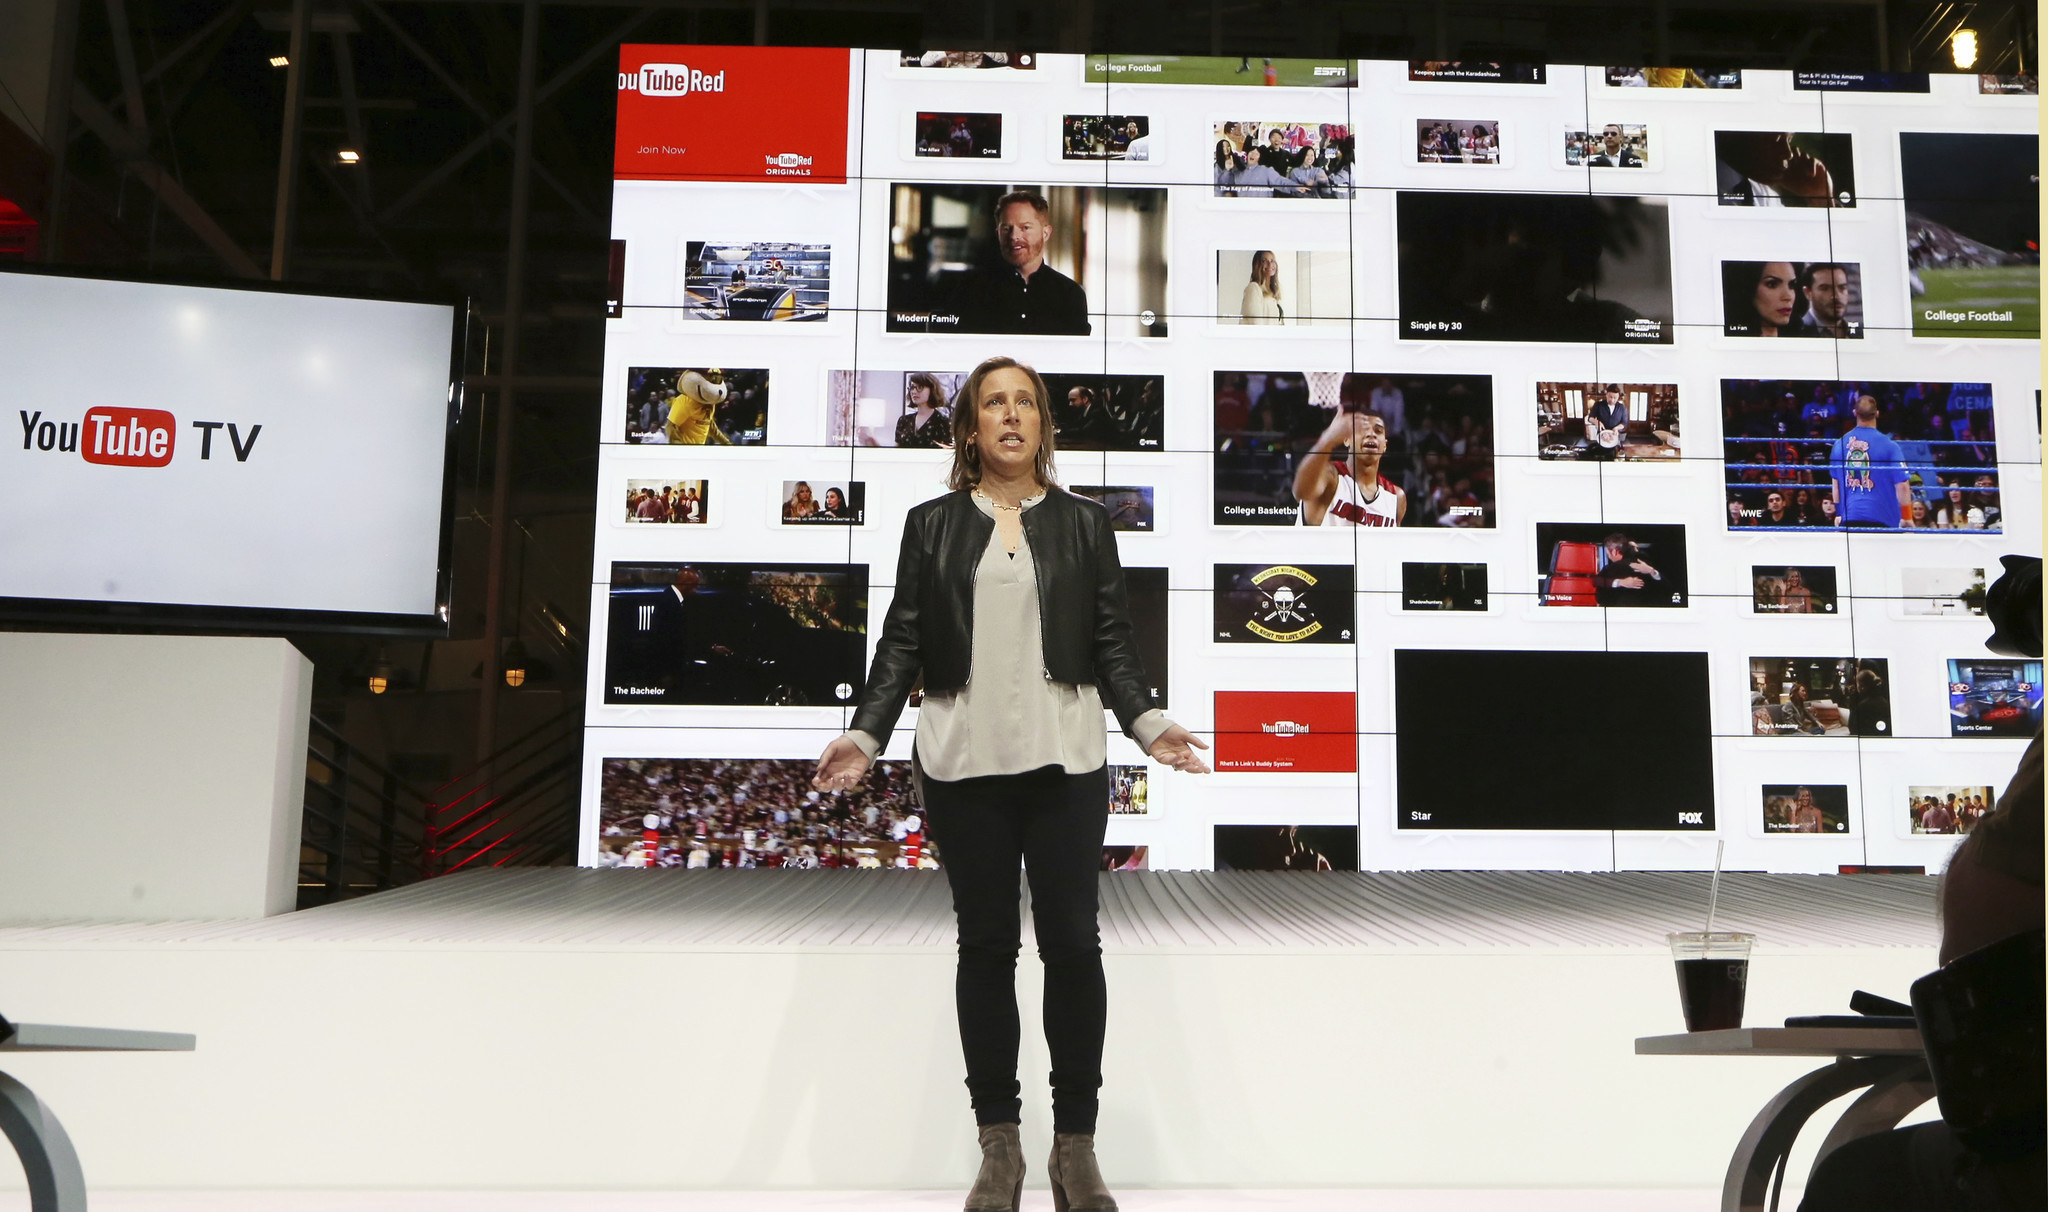 Youtube Tv Launches Today It Has Some Cool Features And